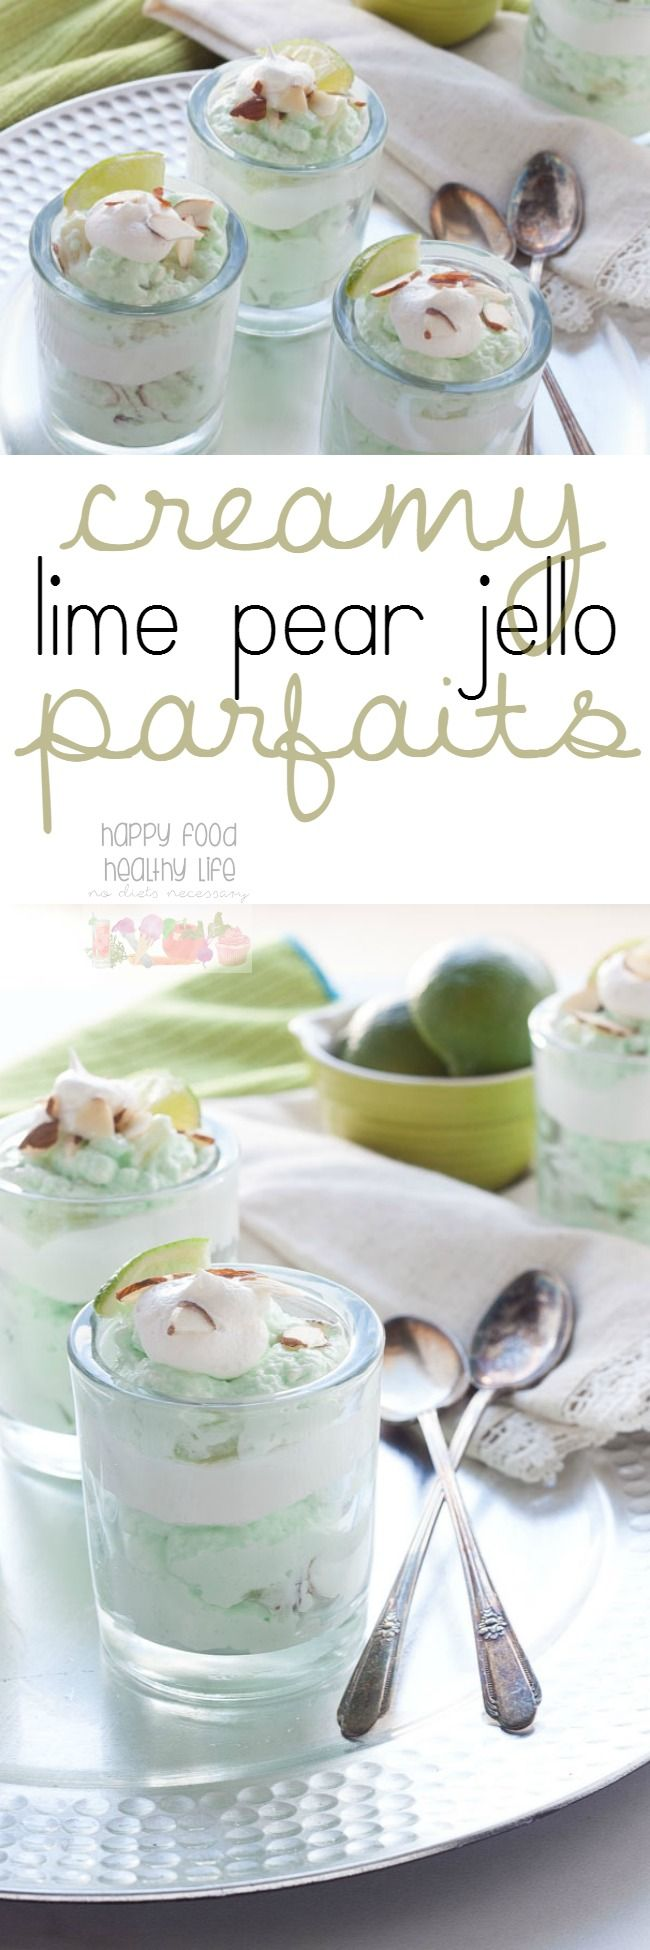 Creamy Lime Jello Parfaits - These creamy lime jello parfaits are the result of a family favorite dessert that has been turned into a modern dessert that's delicious and fresh after any meal. #TODAYFood #ad